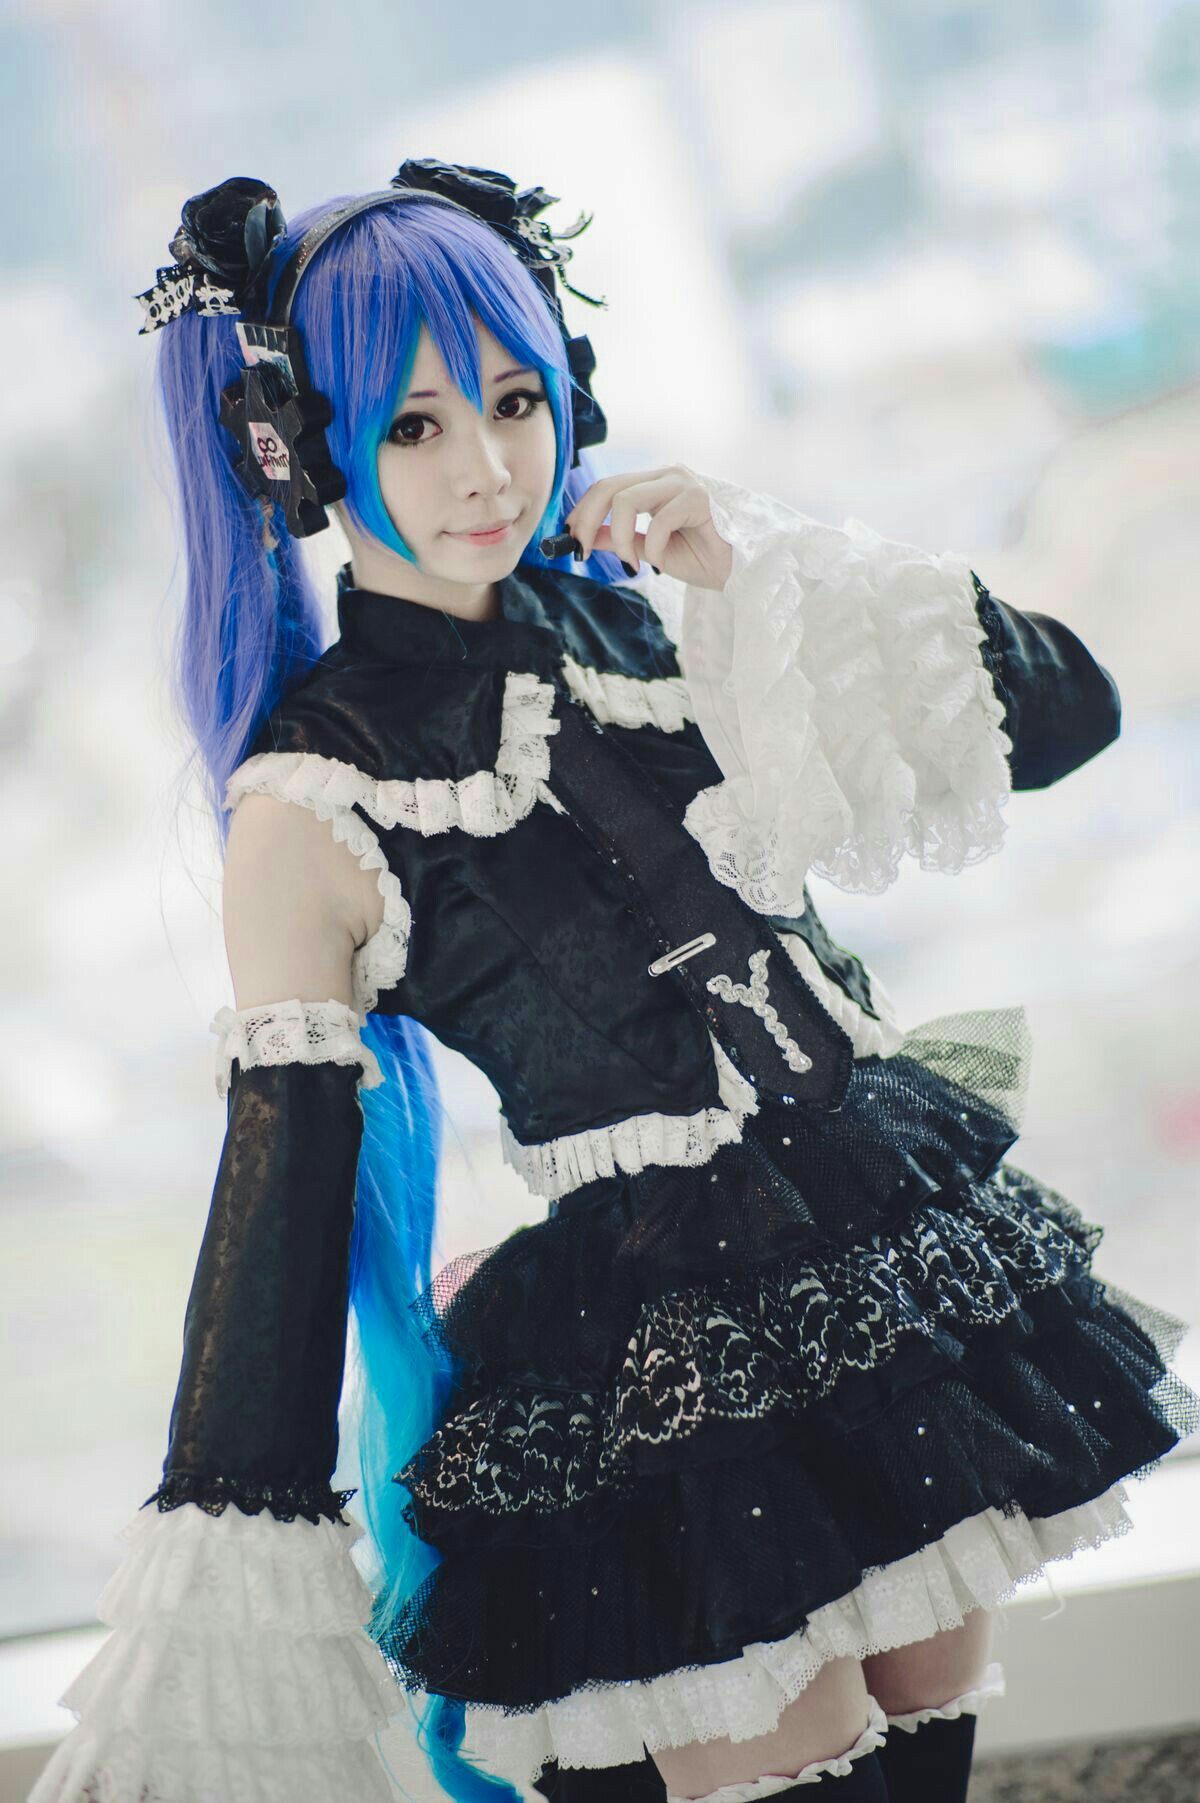 Pin by Kaeyden on Cute/Edgy Outfits Miku cosplay